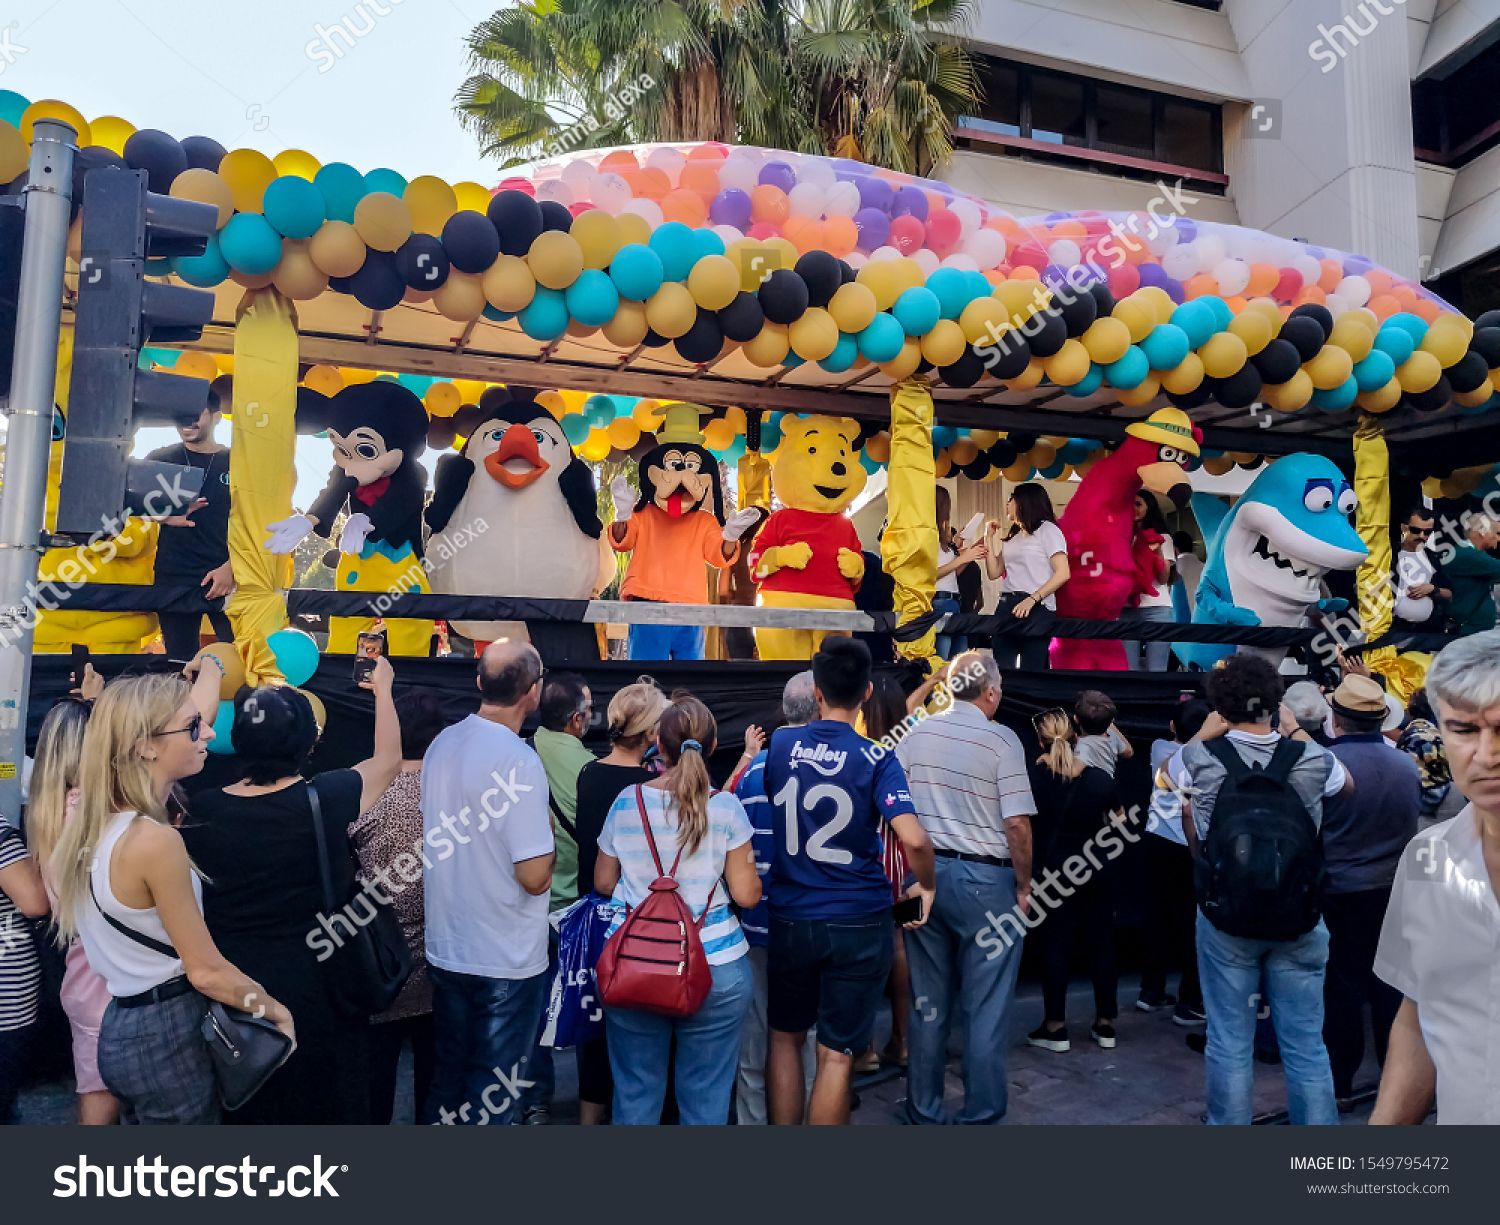 Antalya Turkey  October 26 2019 People in costumes of cartoon characters at the 56th Antalya Golden Orange Film Festival Fans meet and take pictures of celebrities on the...